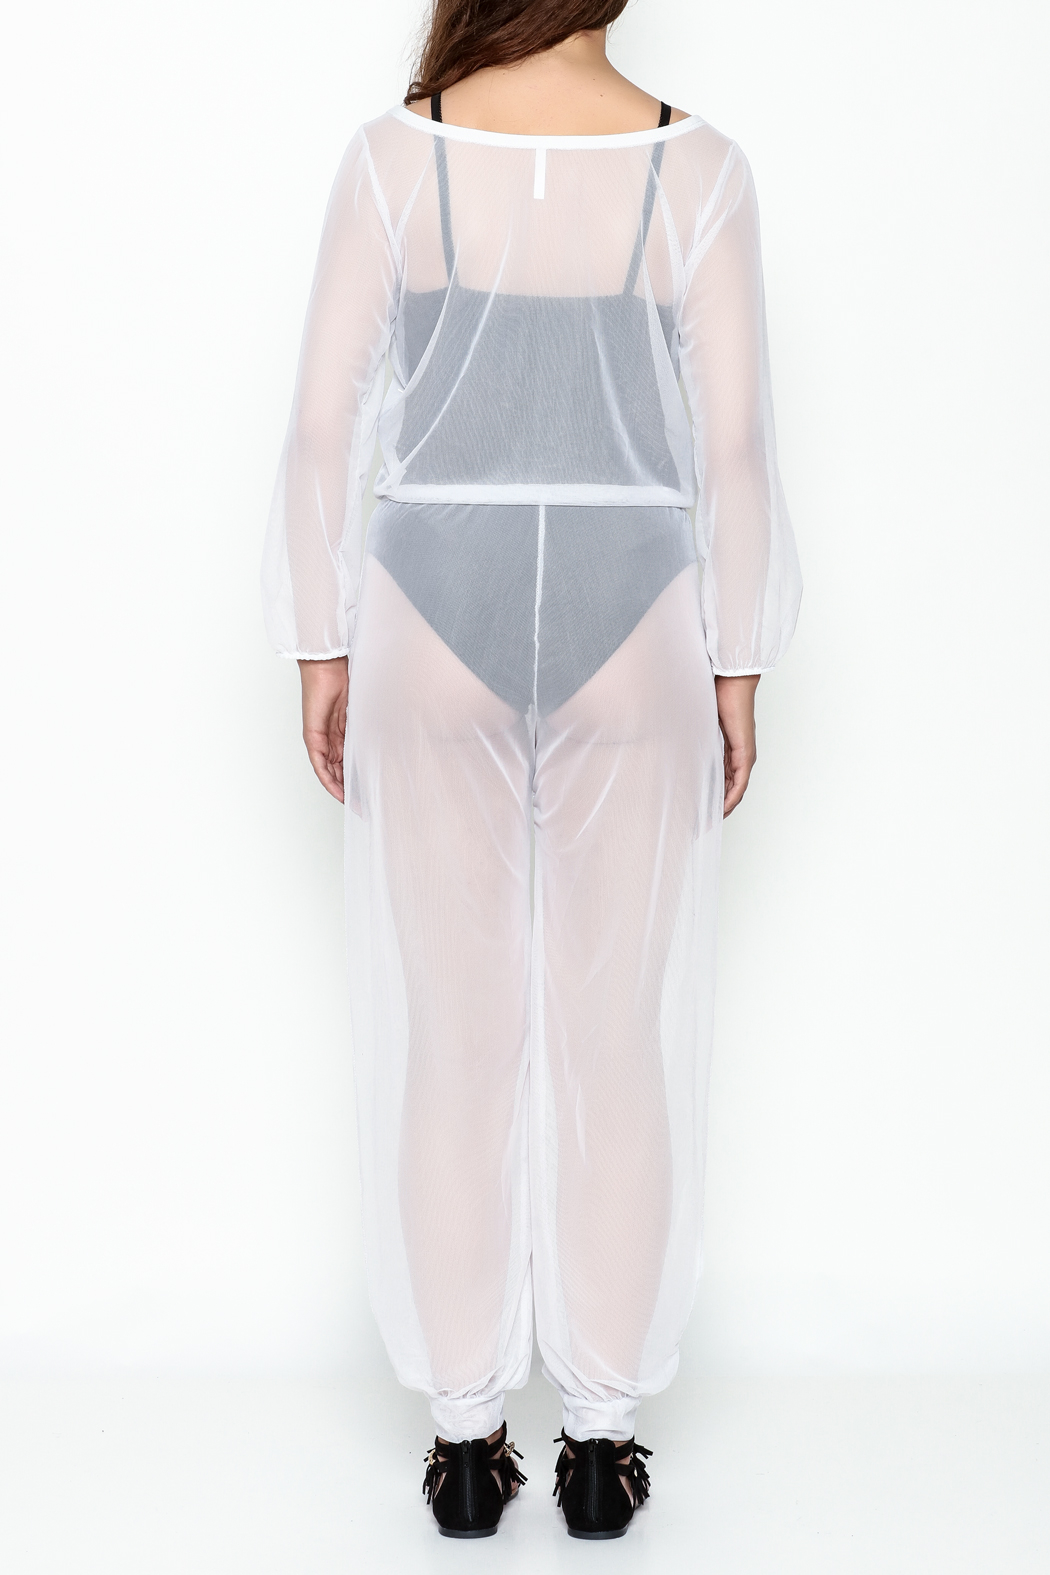 Goodtime Mesh Coverup Jumpsuit - Back Cropped Image